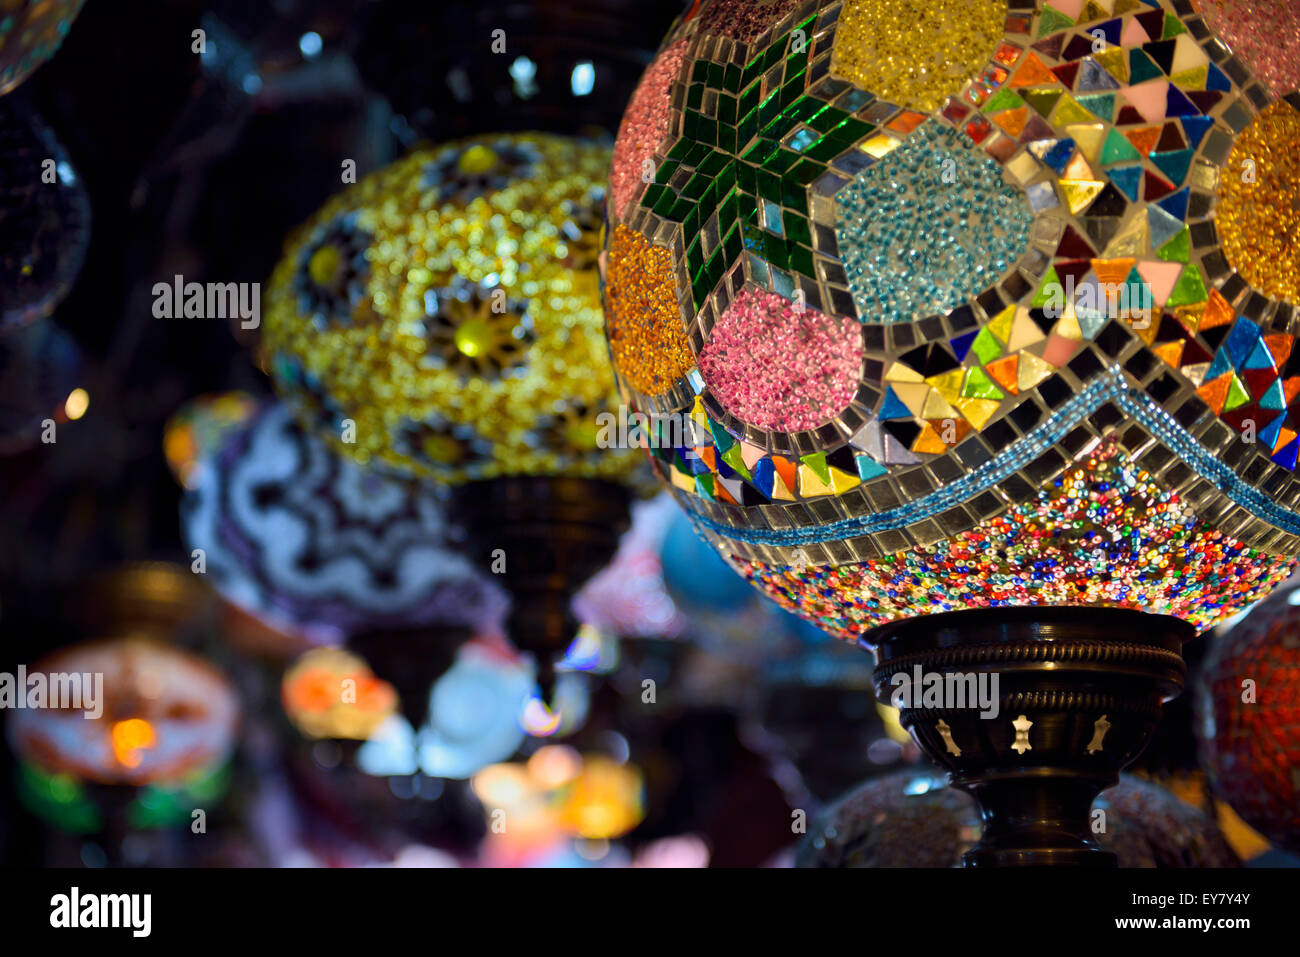 Close up of glass beads of moorish lamps in a shop in Alcaiceria Granada Spain - Stock Image